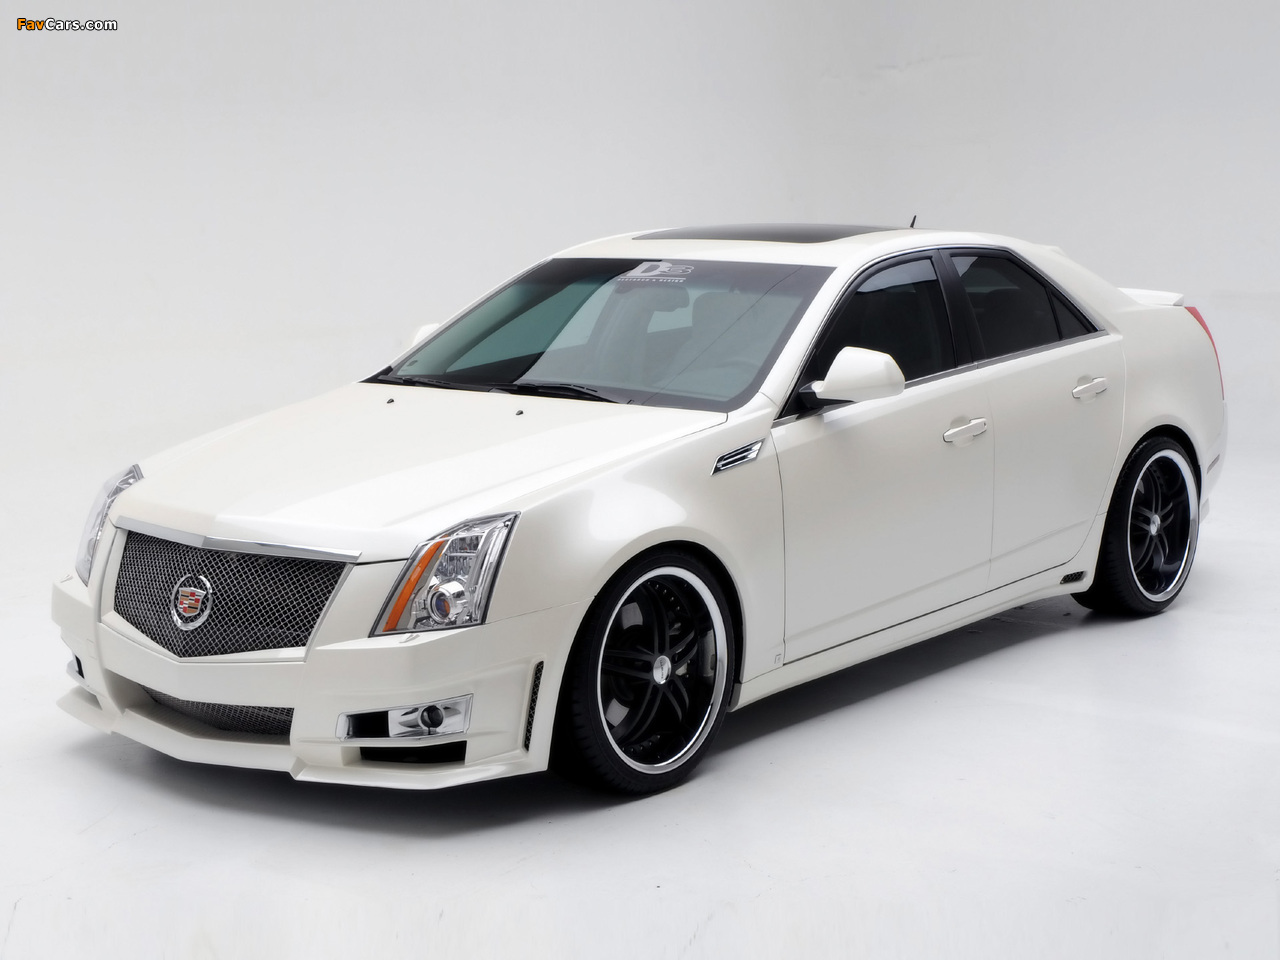 Cadillac CTS by D3 2007 wallpapers (1280 x 960)